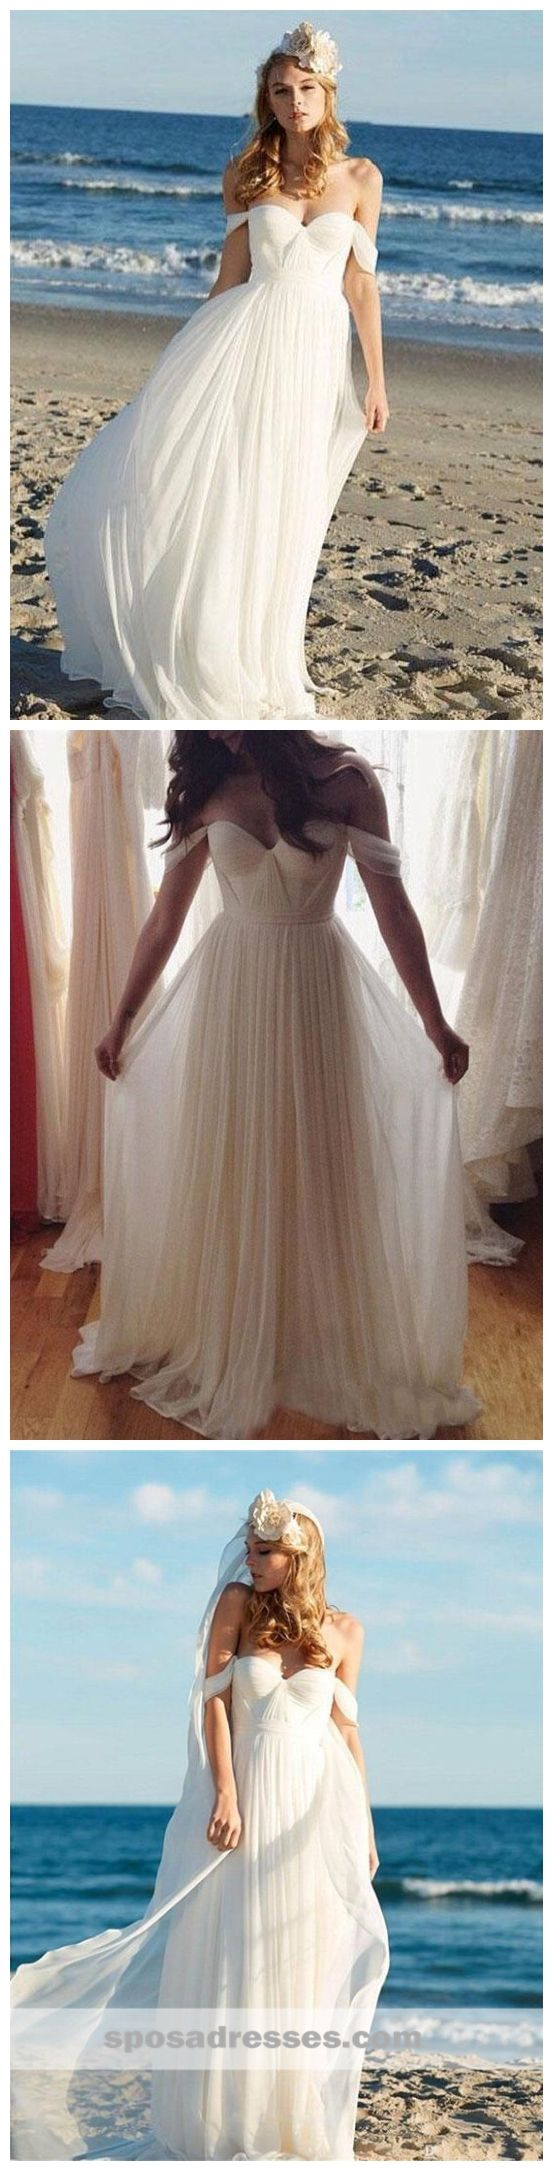 Off the shoulder beach wedding dresses  Simple Off Shoulder Beach Wedding Dresses Online Cheap Chiffon